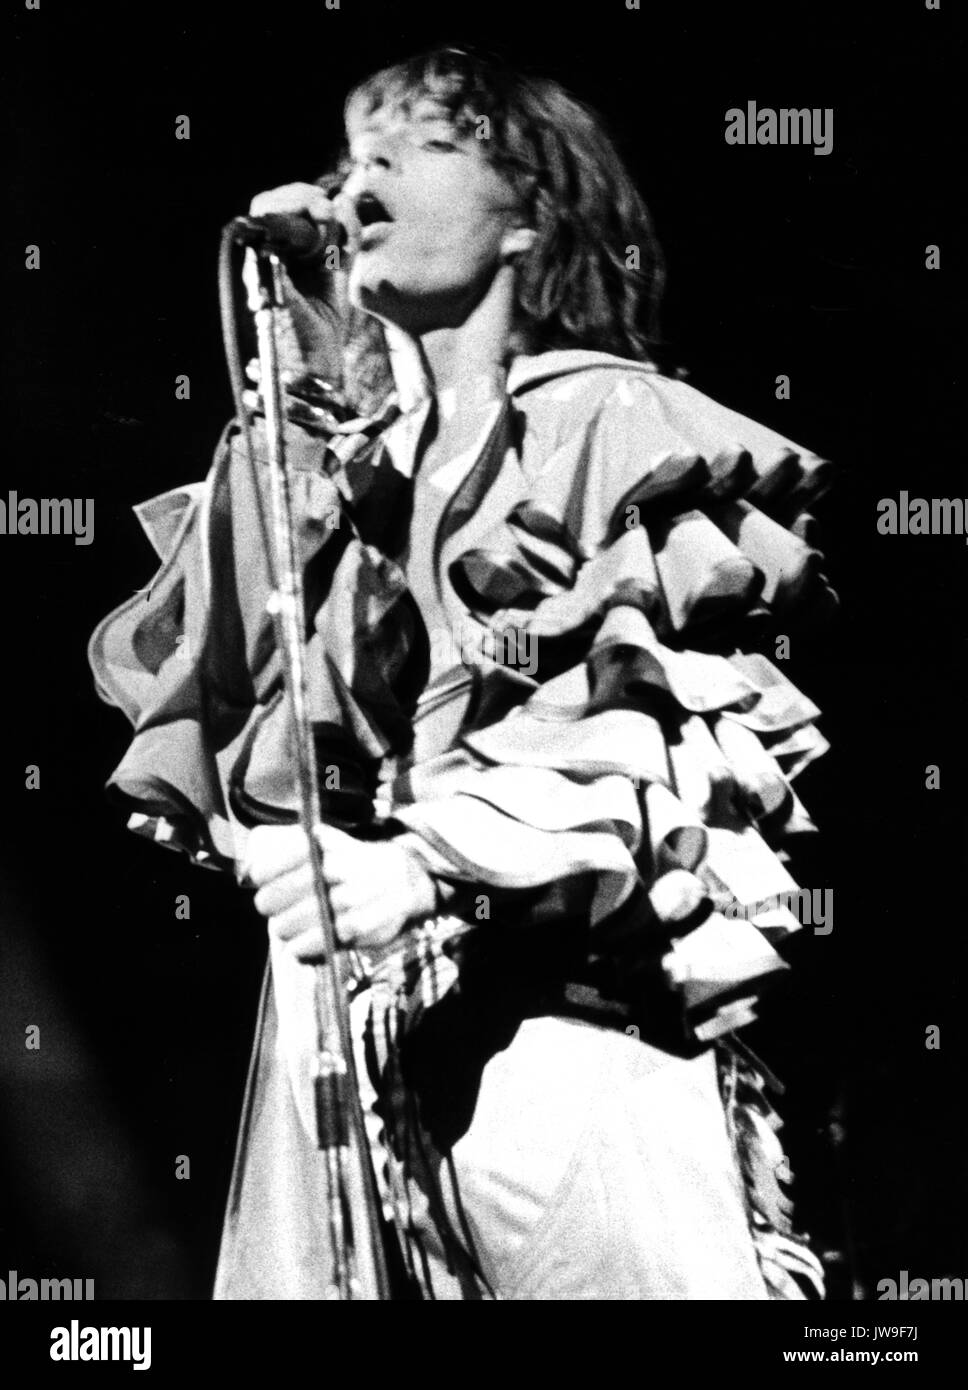 Mick Jagger on stage. The Rolling Stones on 28 April 1976 at the Festhalle in Frankfurt (Germany). | usage worldwide Stock Photo